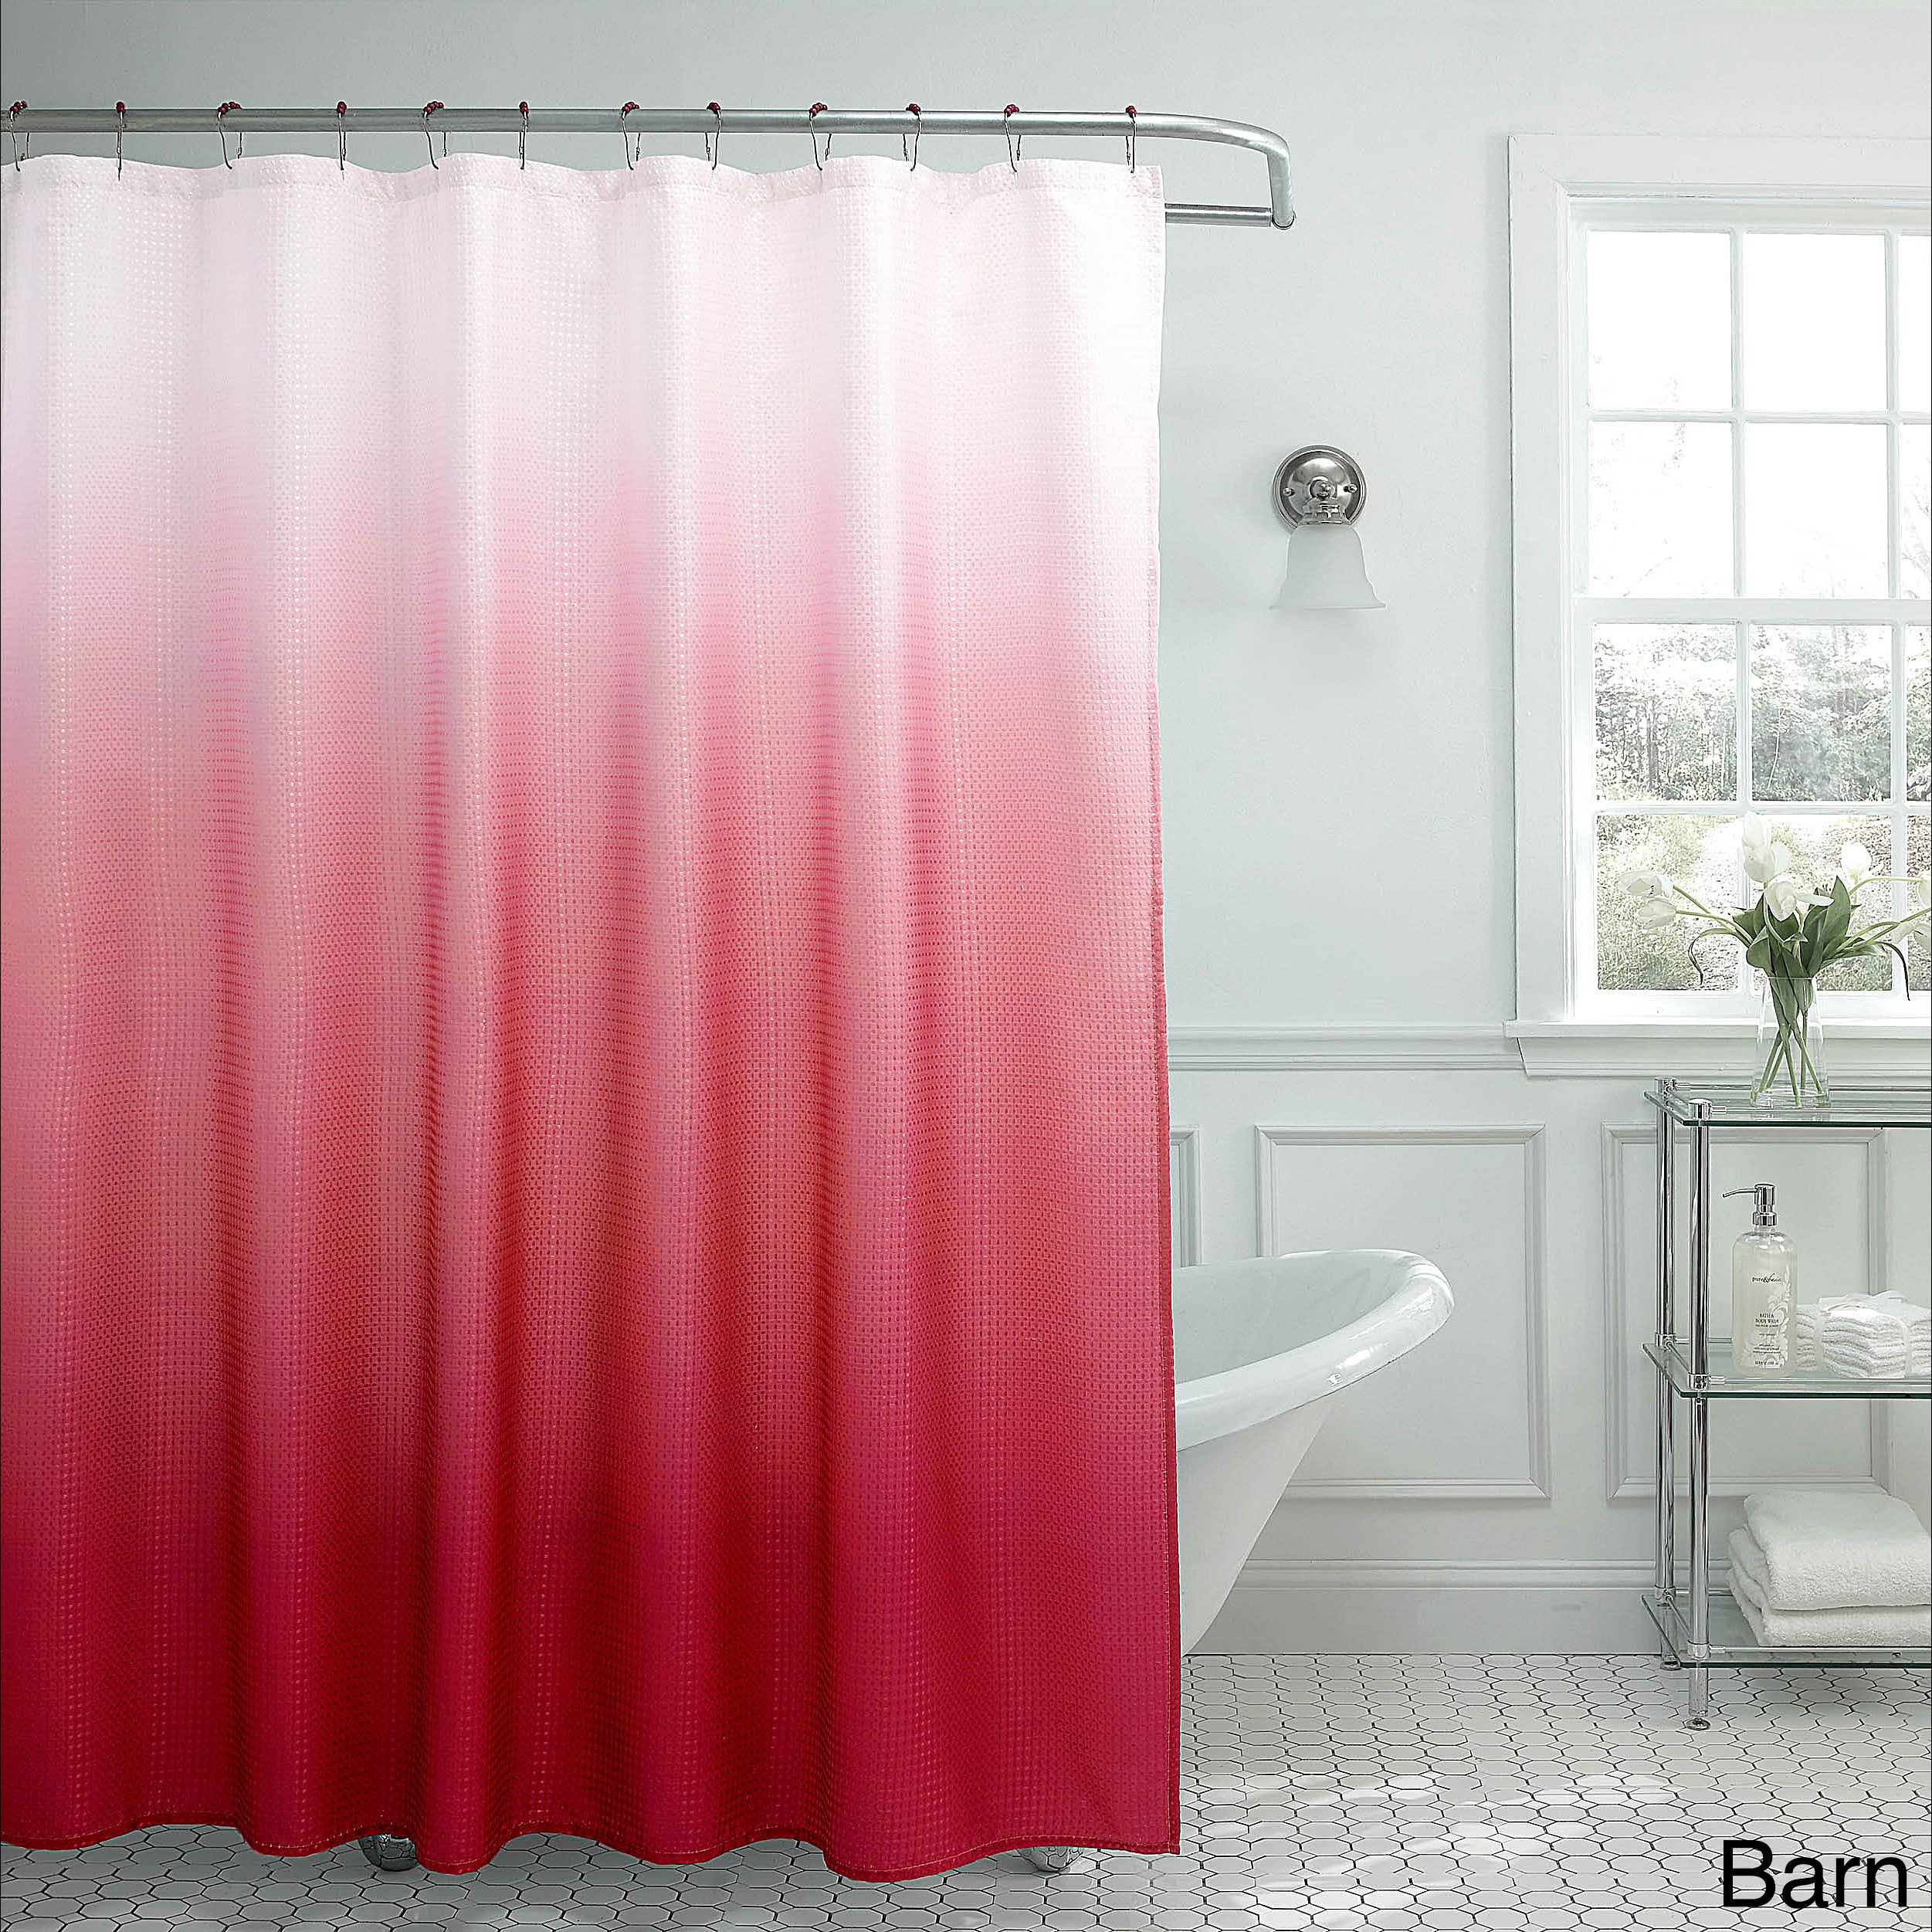 Creative Home Ideas Ombre Waffle Weave Shower Curtain w/ 12 Color  Coordinating Metal Rings - Free Shipping On Orders Over $45 - Overstock.com  - 19636653